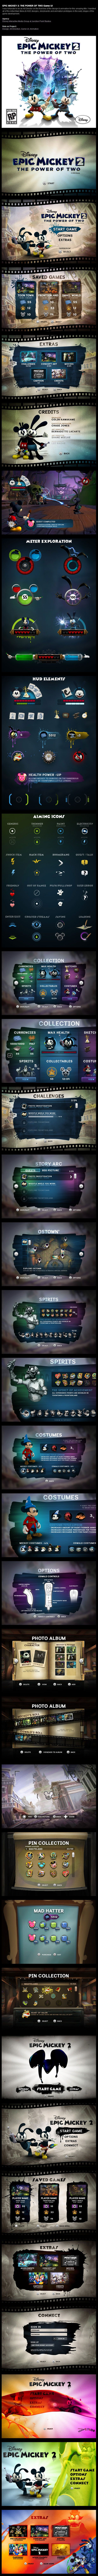 PROJECT BY Shane Mielke. Click here:http://www.behance.net/gallery/Epic-Mickey-2-The-Power-of-Two-Game-UI/8416329